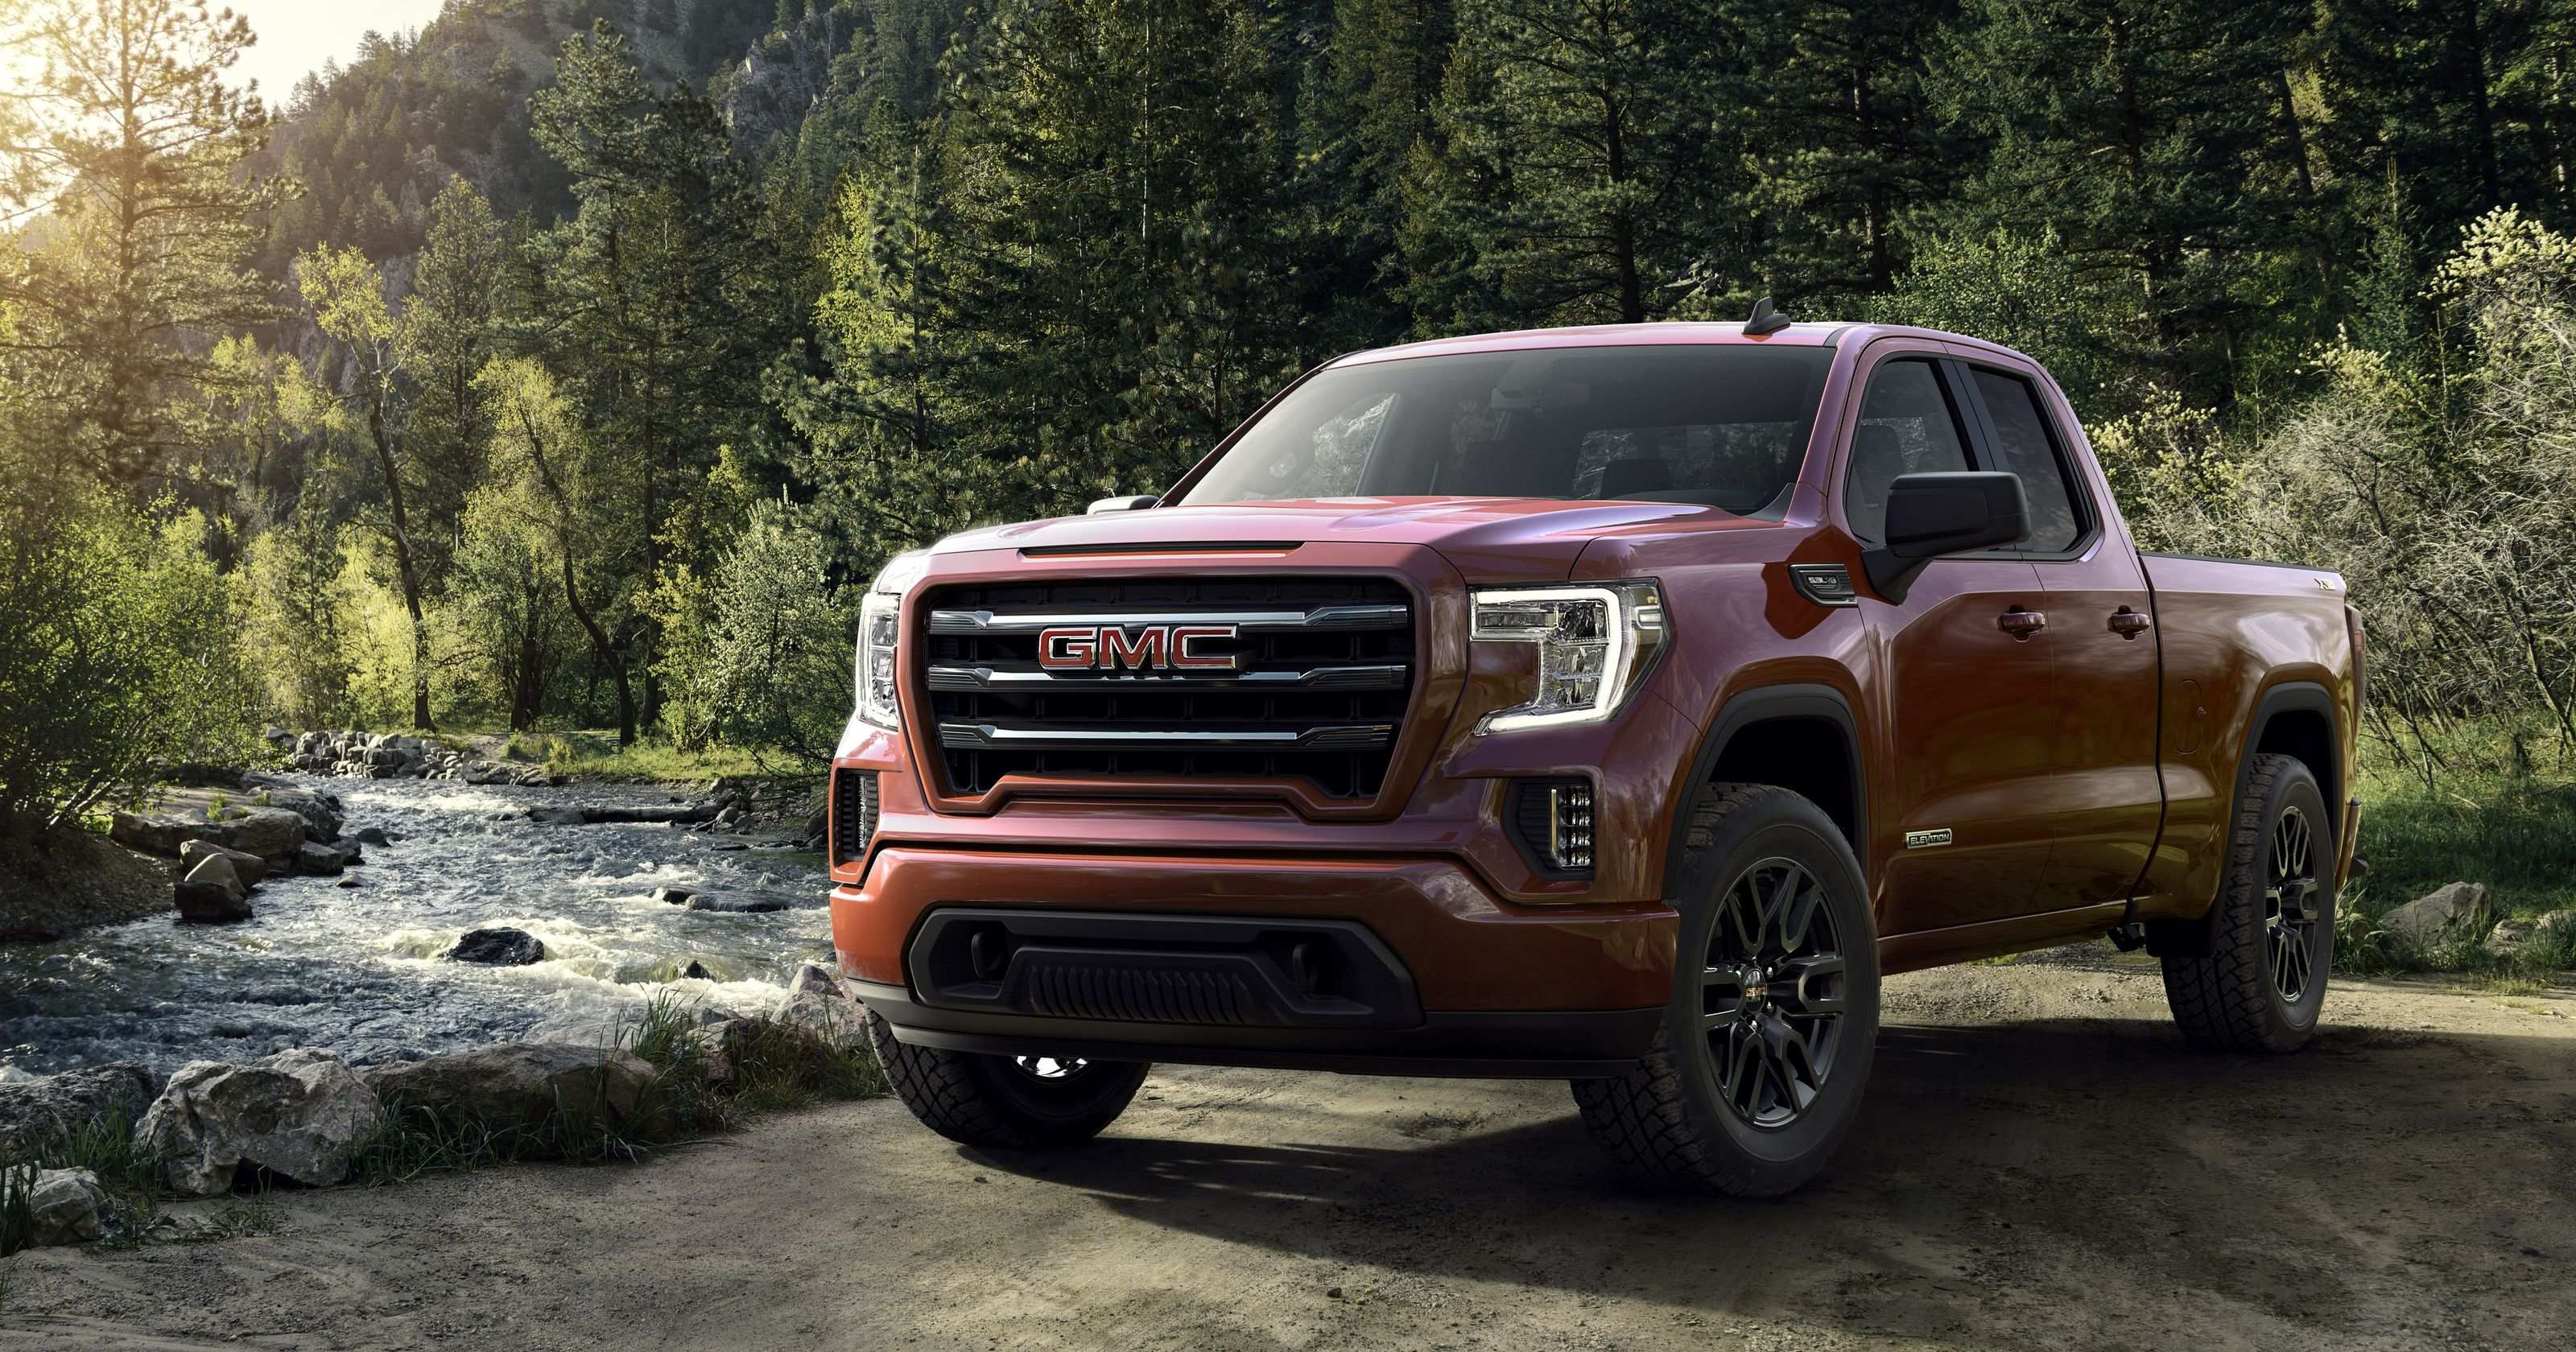 95 All New 2019 Gmc Lineup Images for 2019 Gmc Lineup